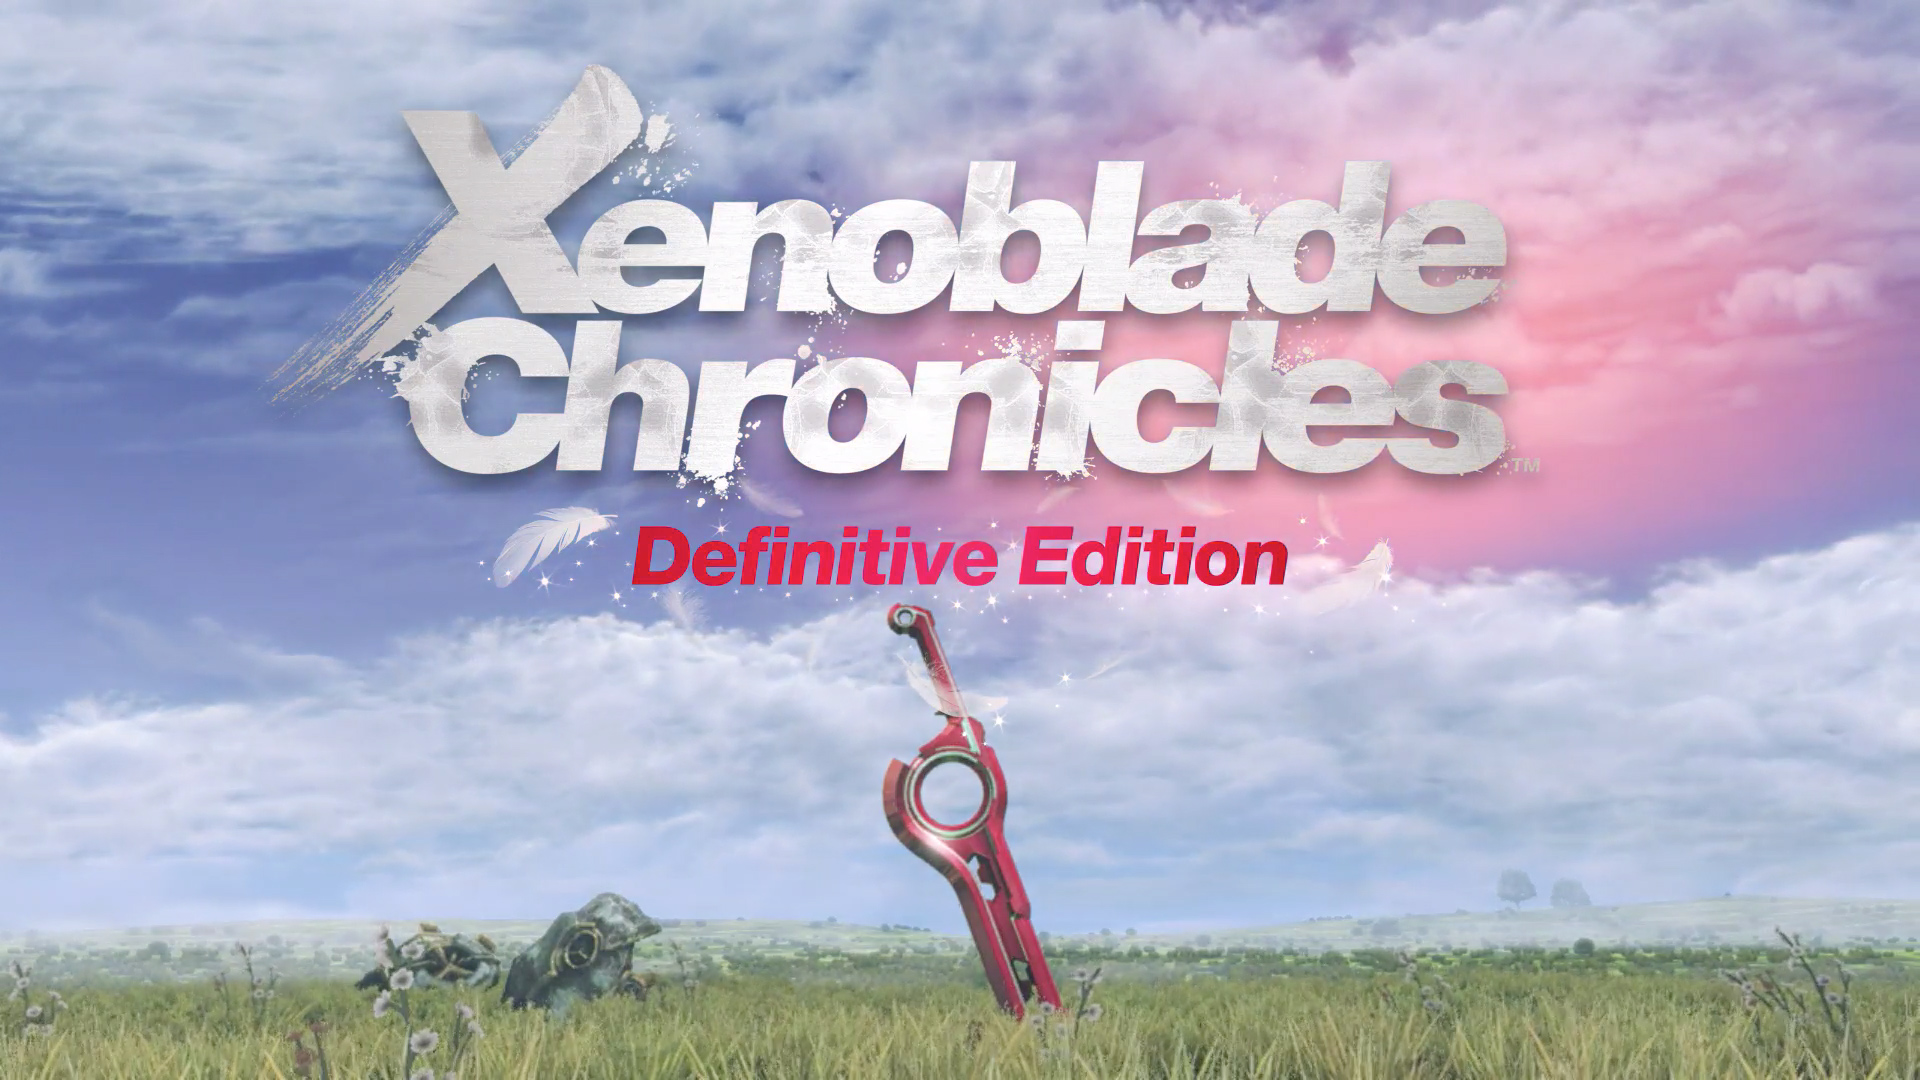 Xenoblade-Chronicles-Definitive-Edition-switch.jpg